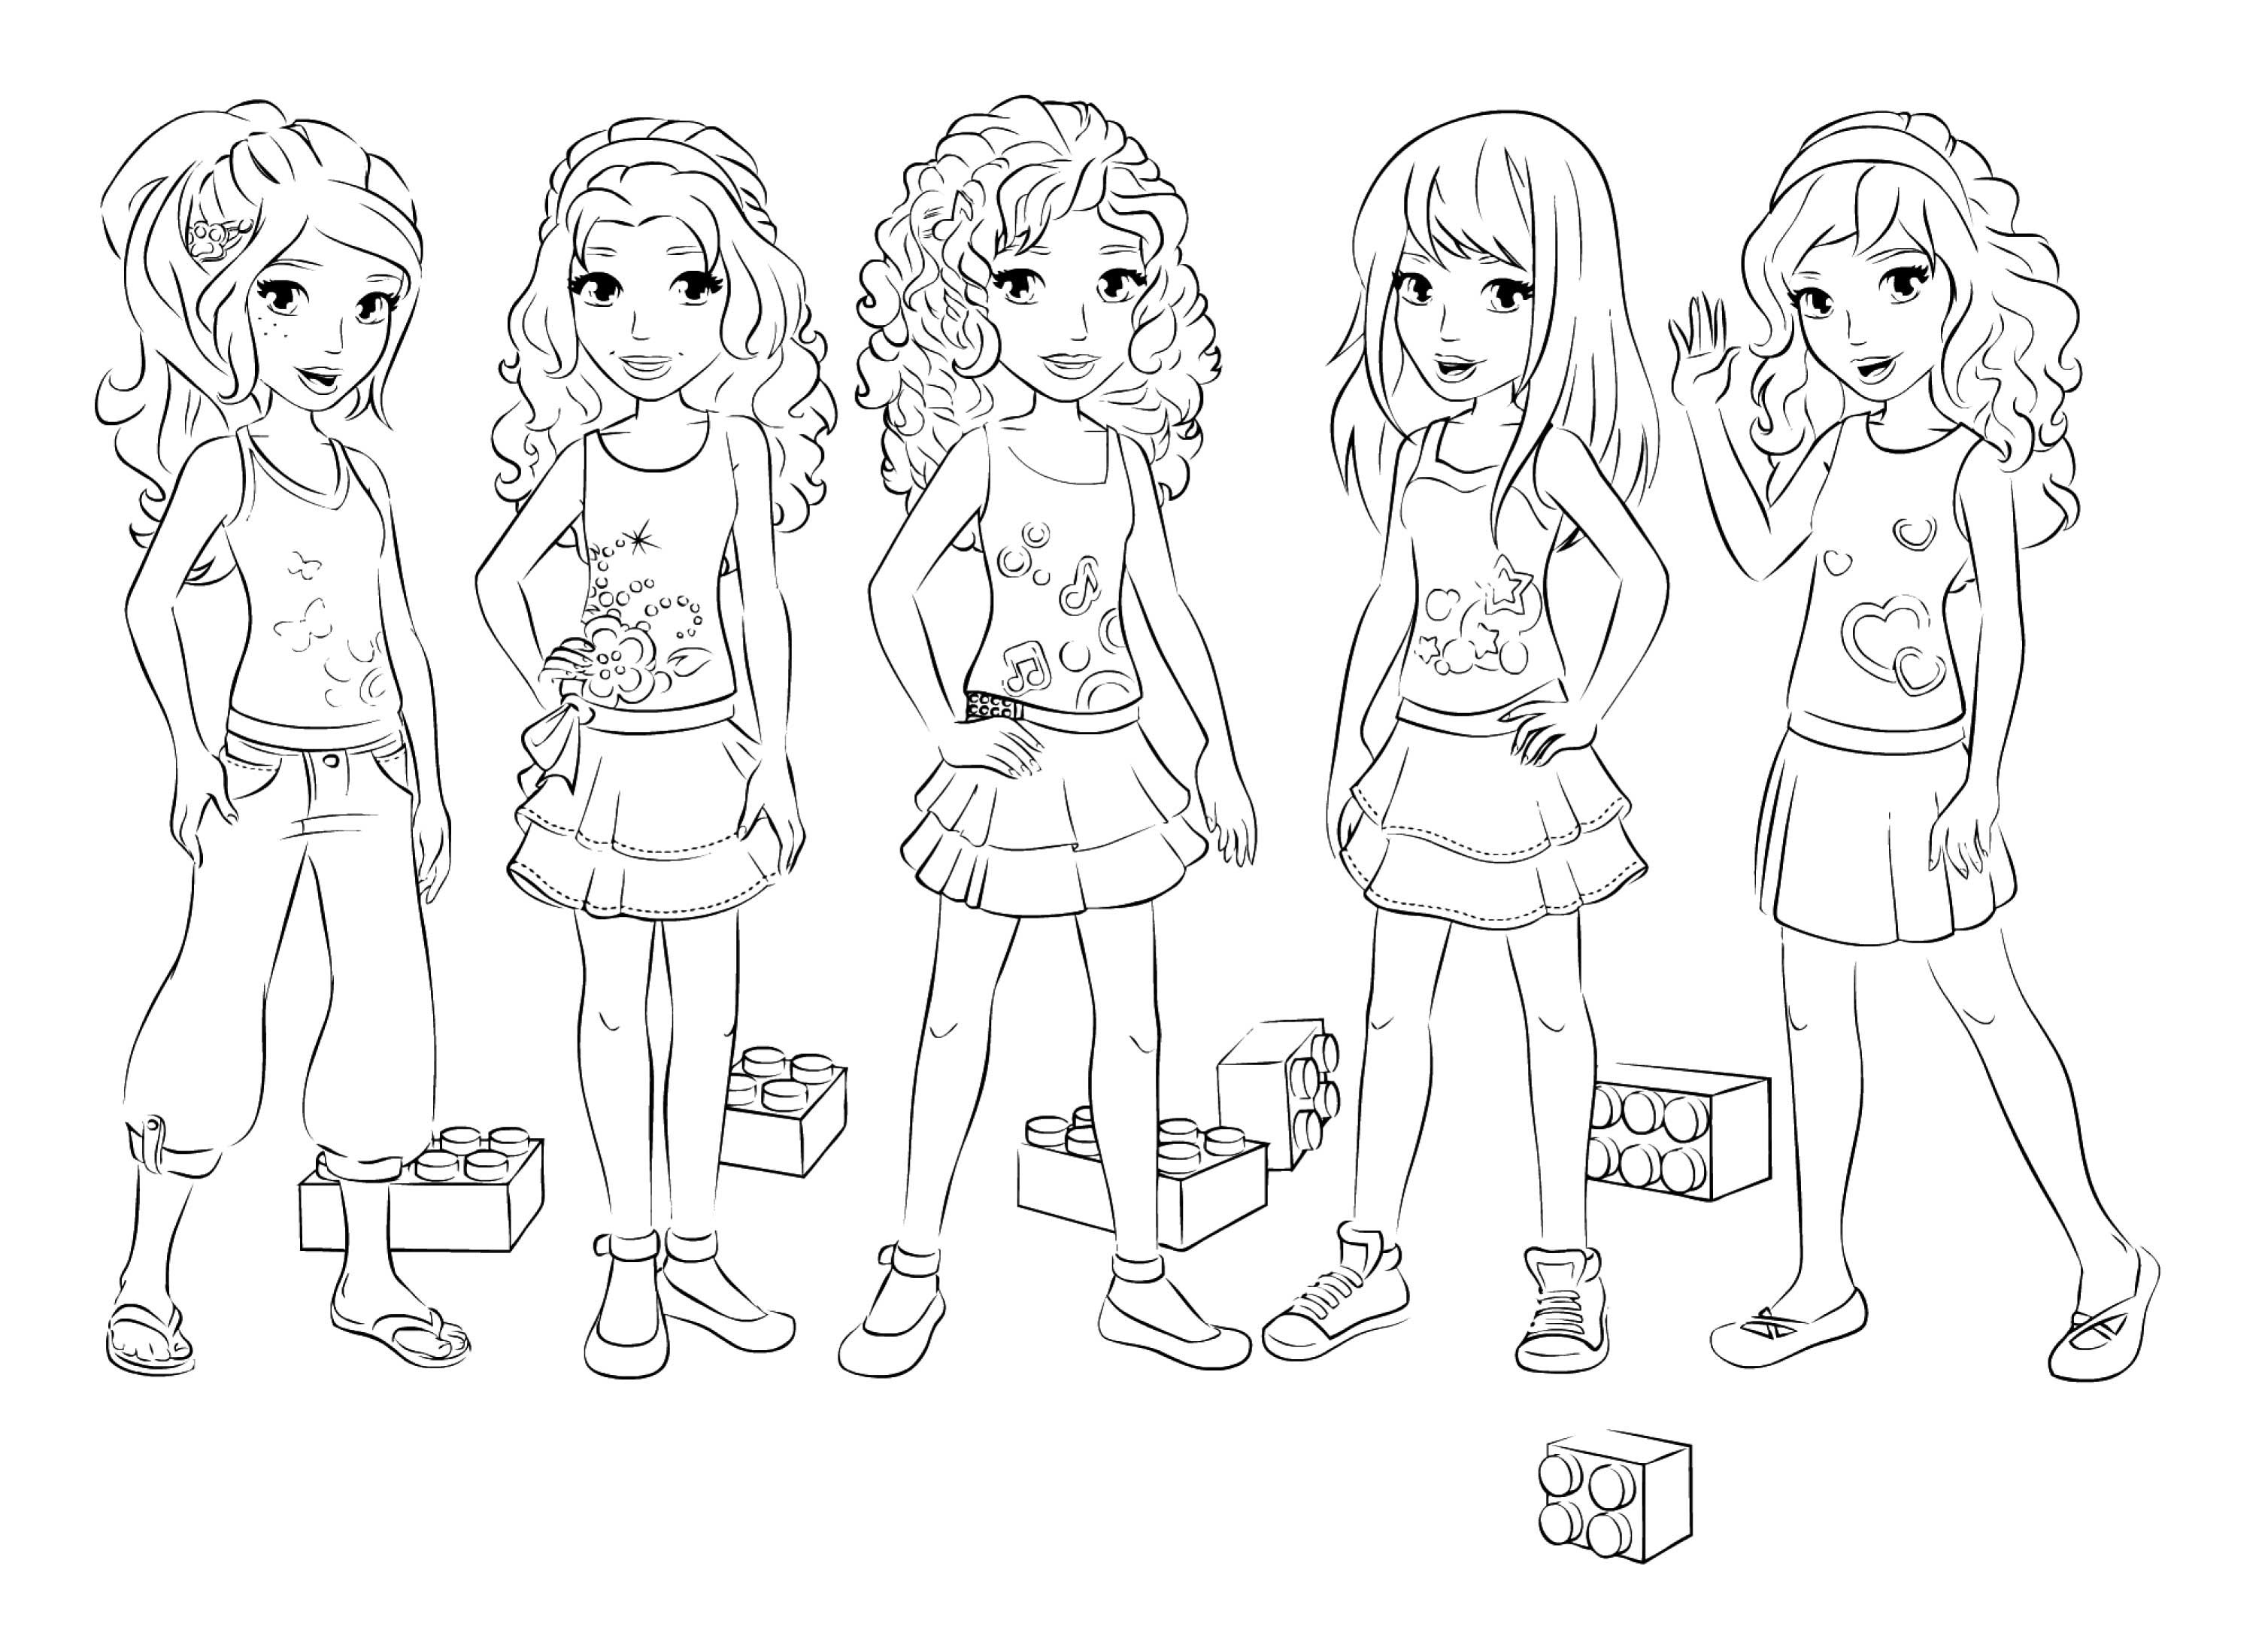 coloring pages of lego friends lego friends birthday party lego friends coloring lego of lego pages coloring friends